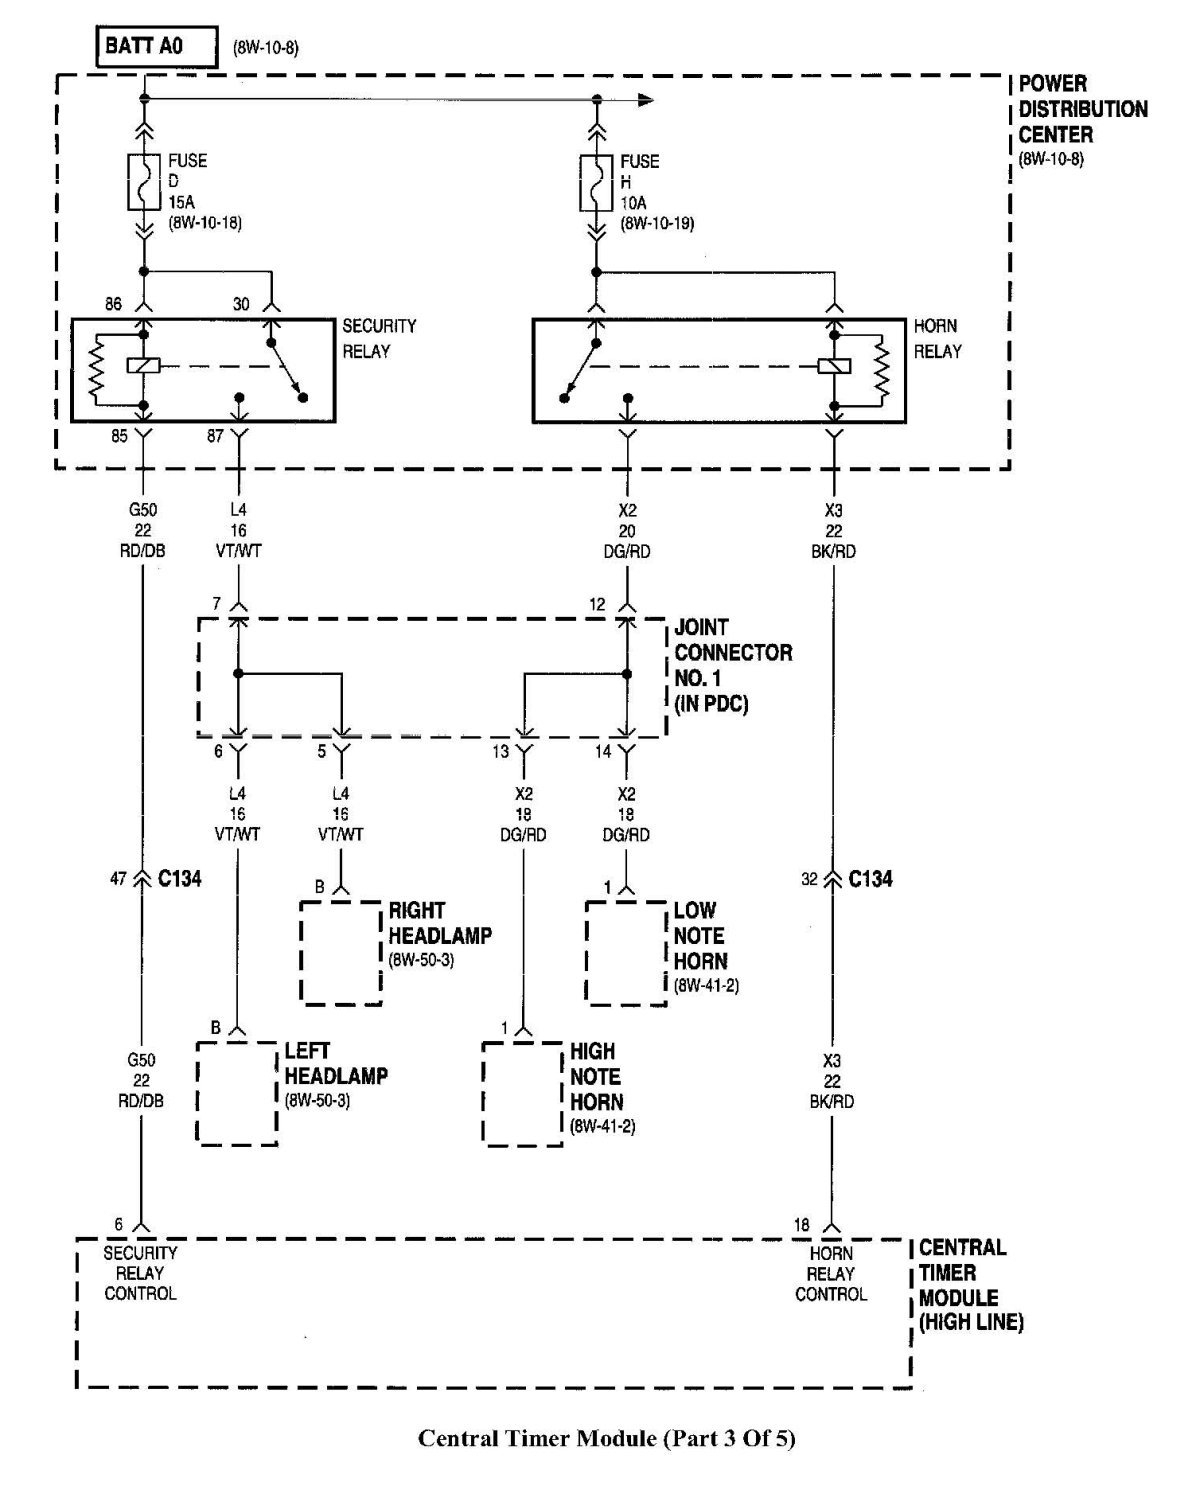 Wiring Diagram For 1998 Dodge Ram 3500 - Wiring Diagrams Hubs - 2005 Dodge Ram Trailer Wiring Diagram